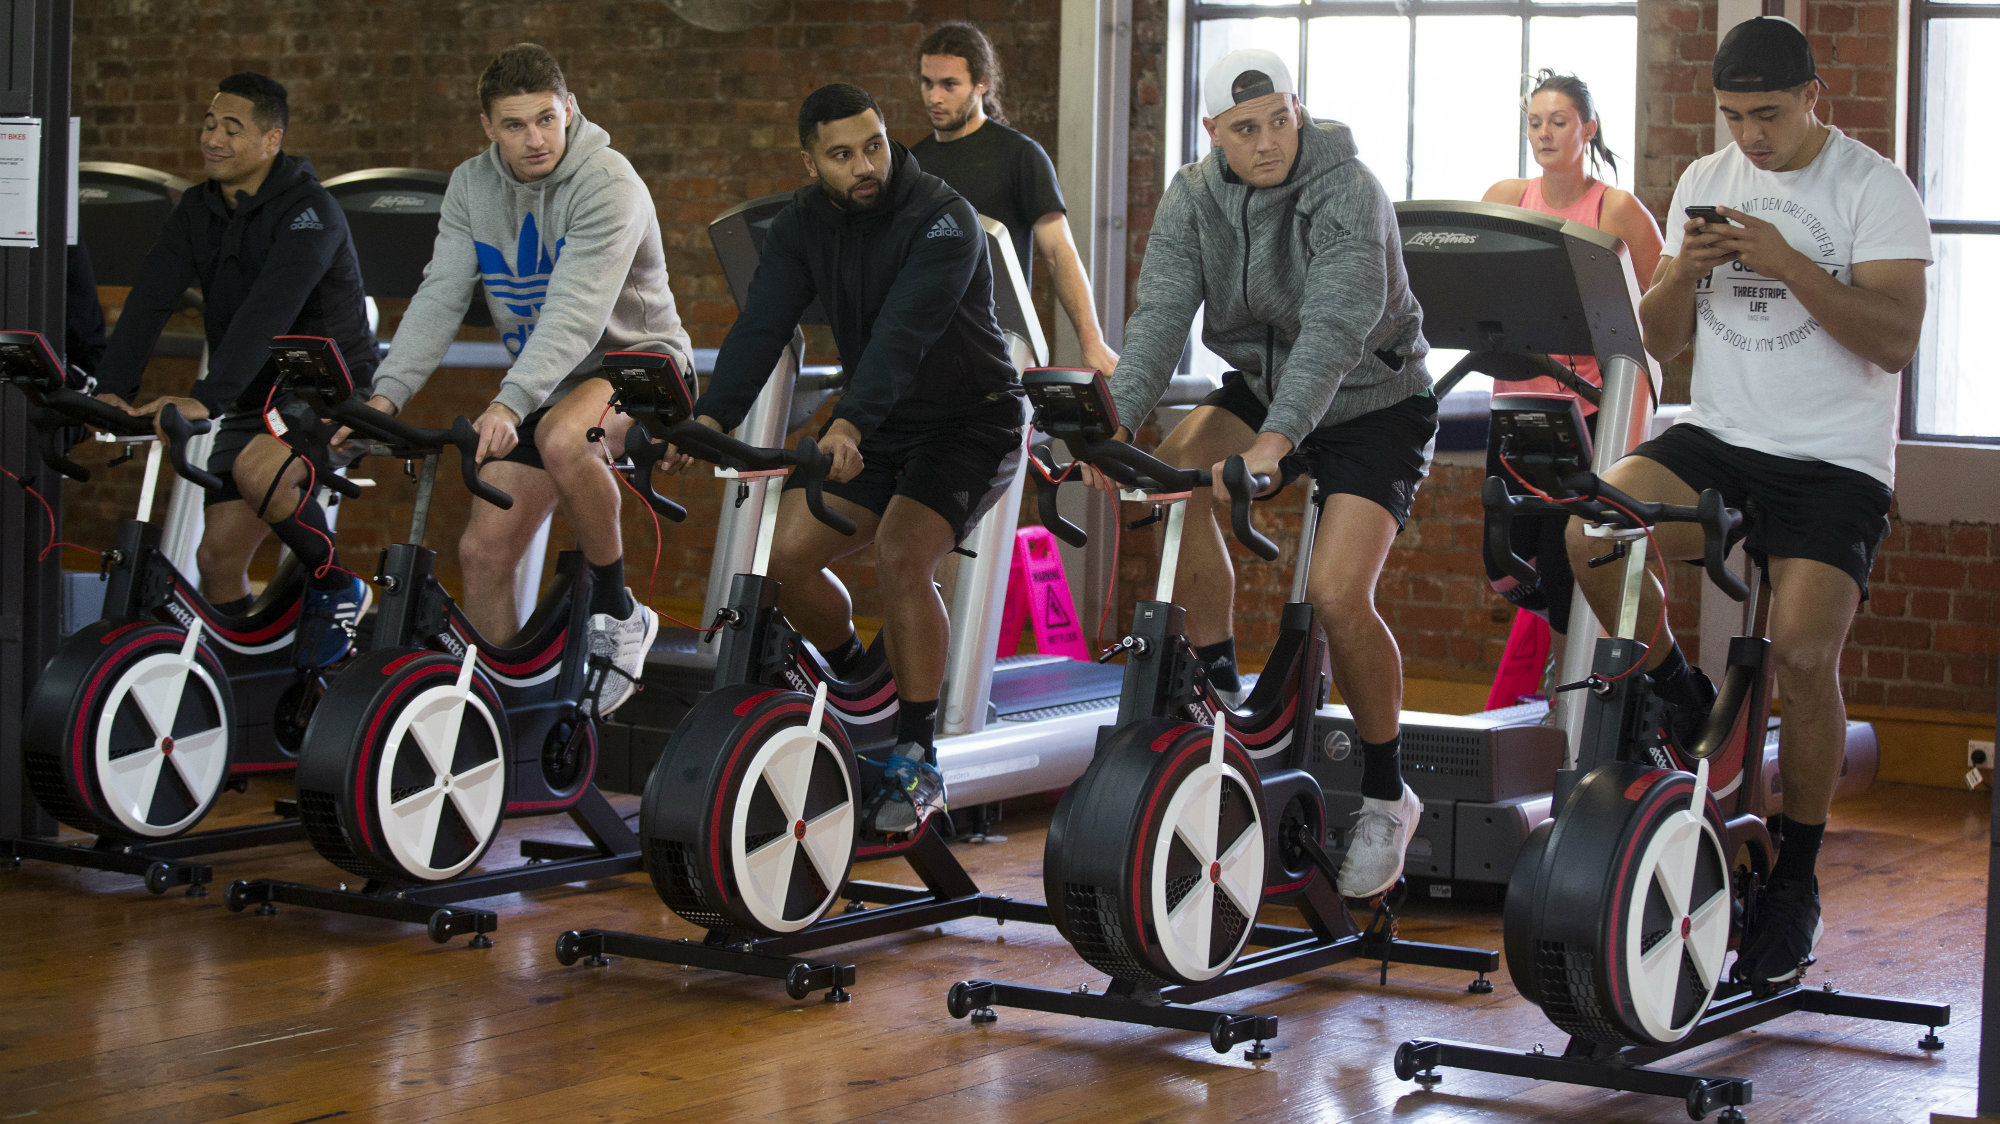 People work out on stationary bikes and treadmills at a gym